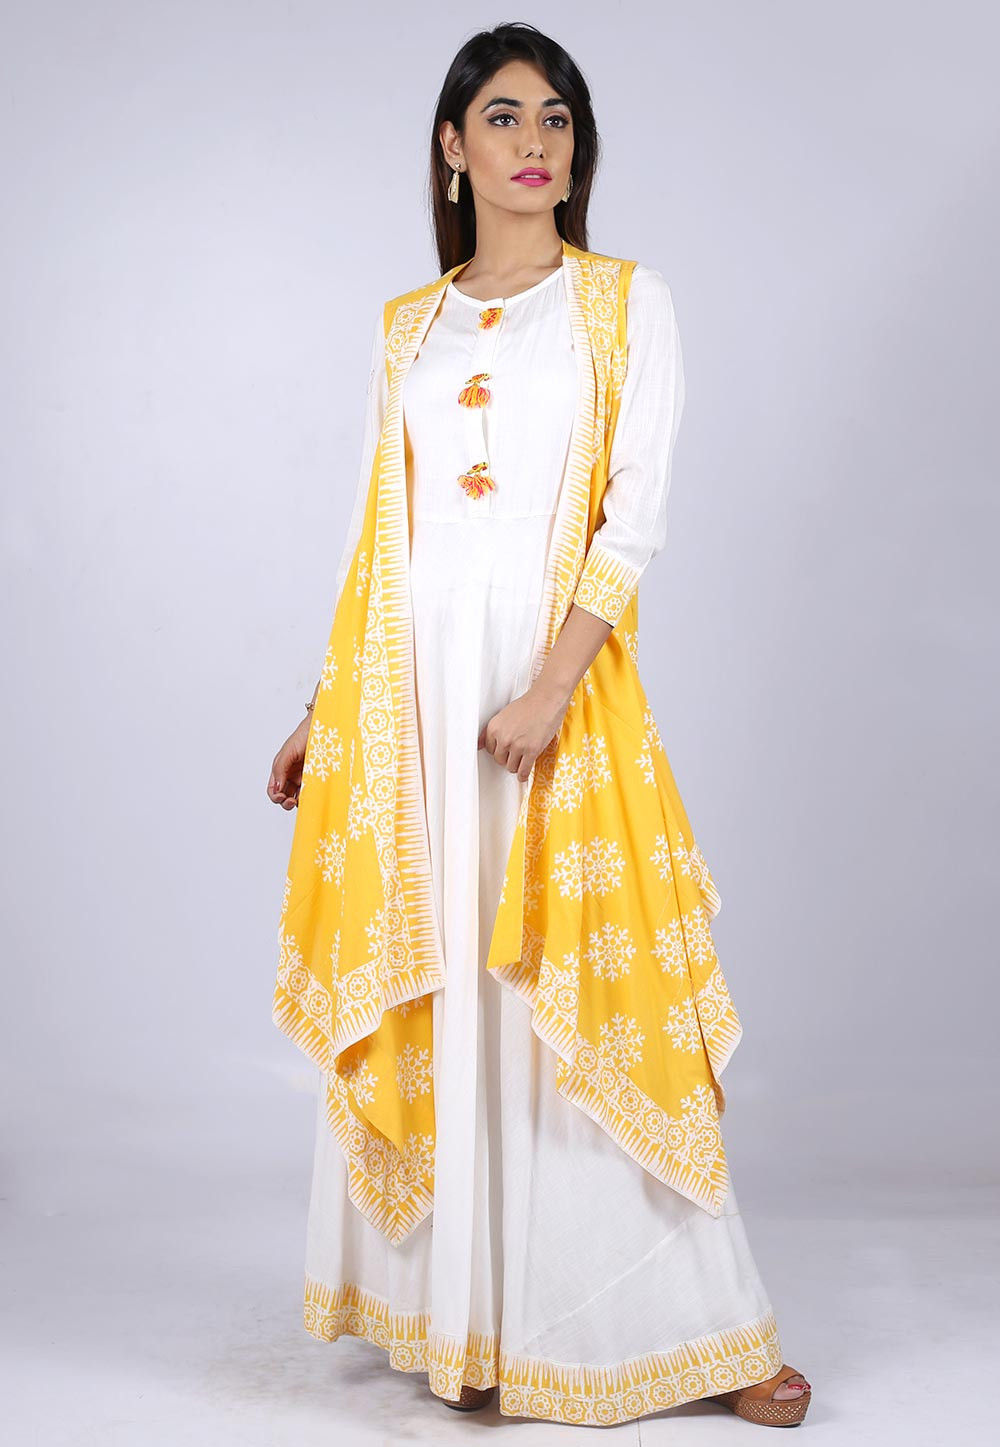 Block Printed Border Cotton Long Dress With Jacket In White Tqm24